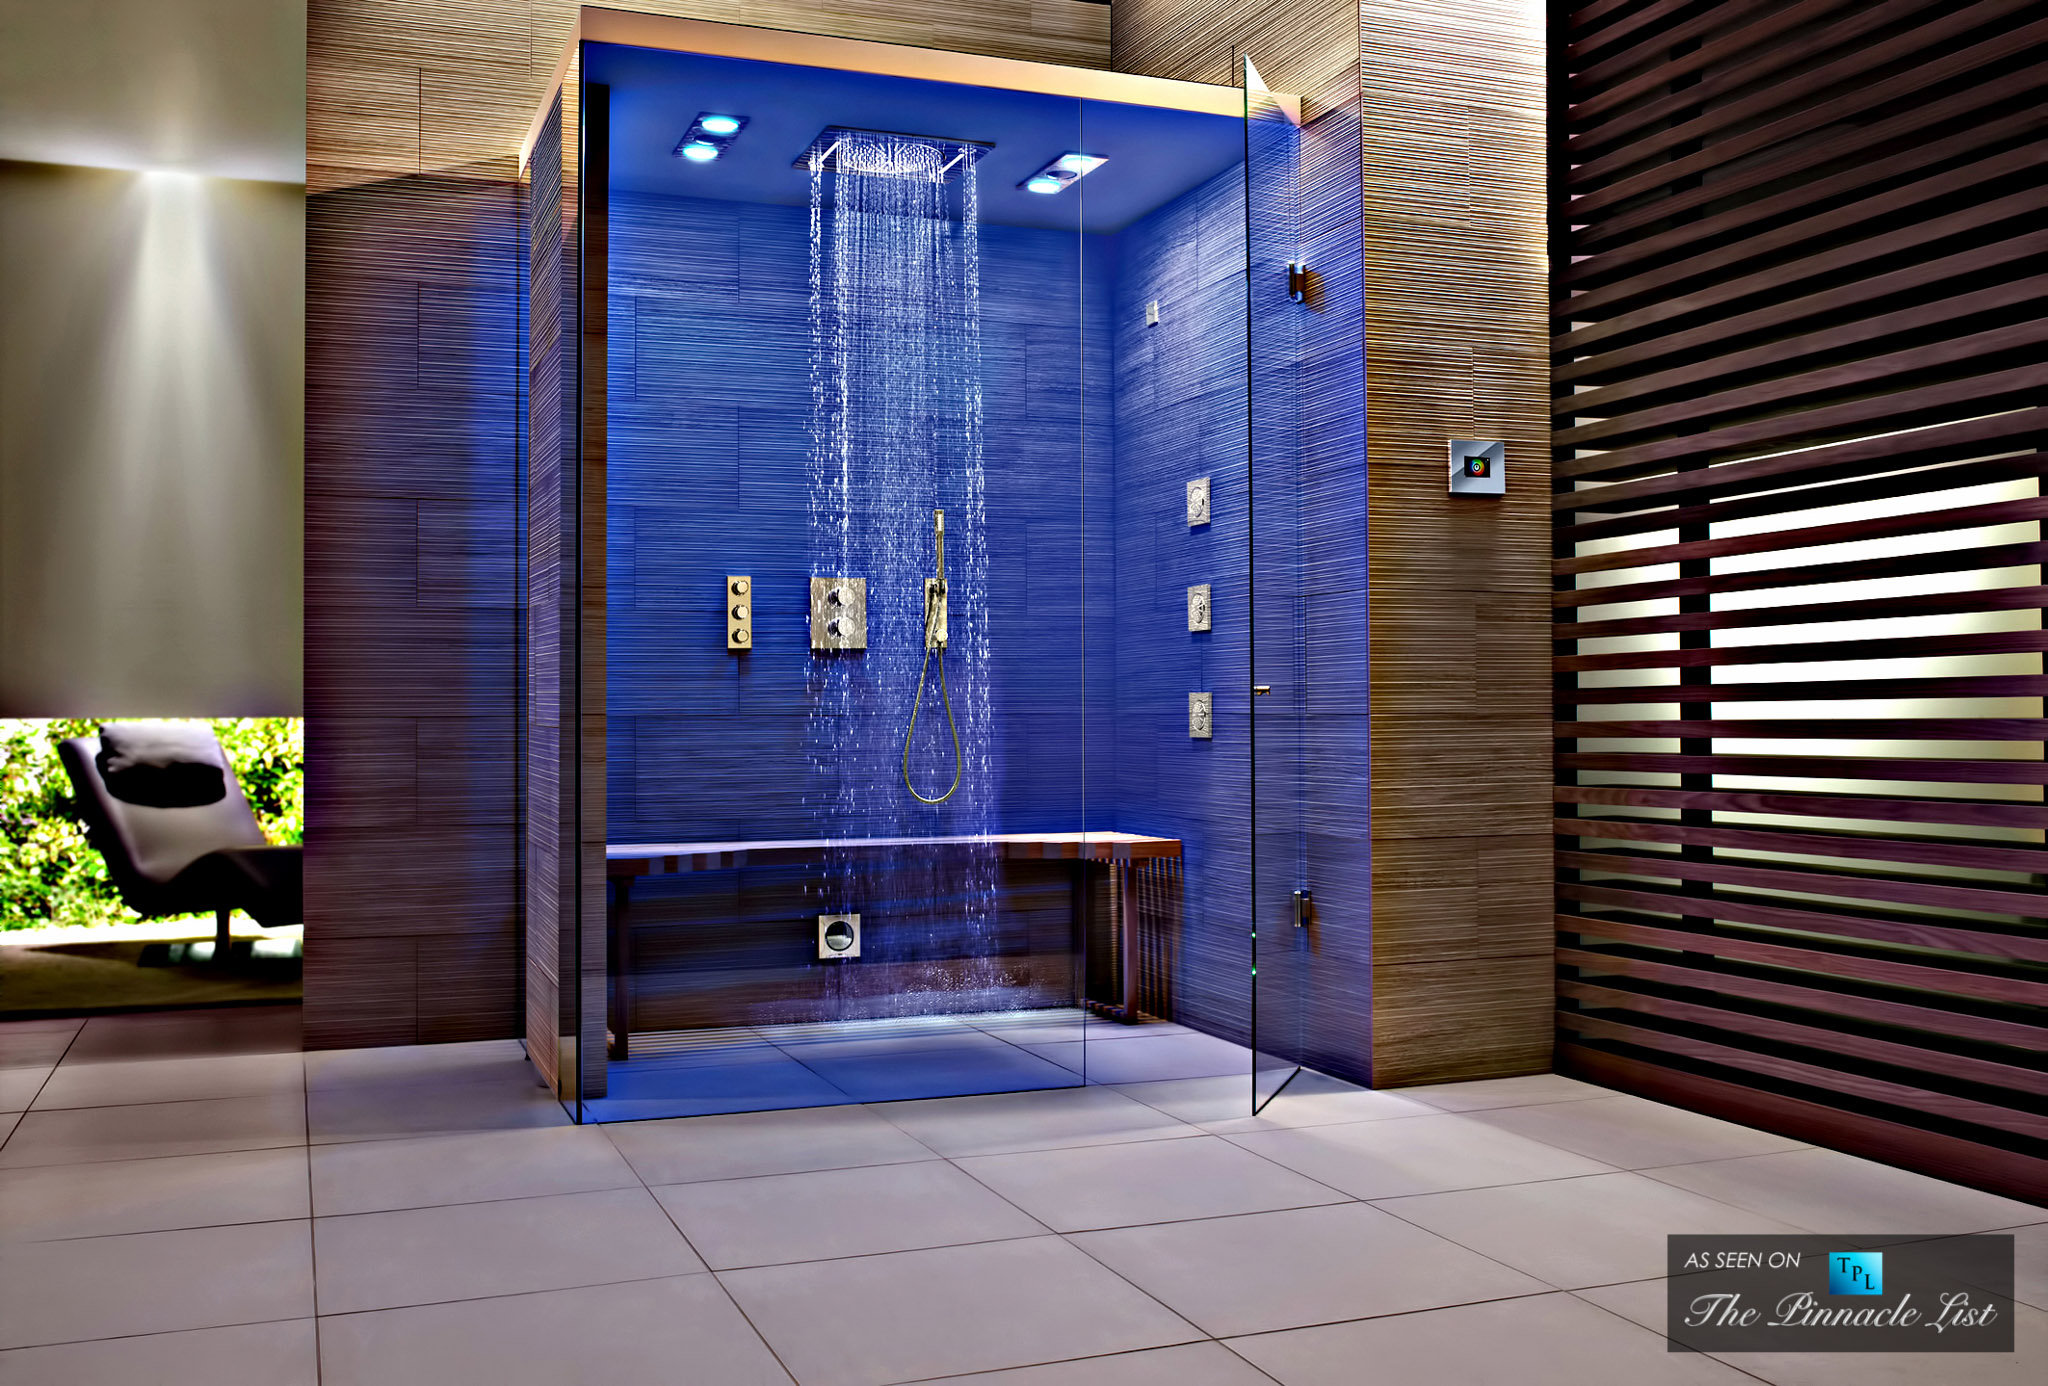 Smart Water Control - Luxury Home Design - 4 High-End Bathroom Installation Ideas